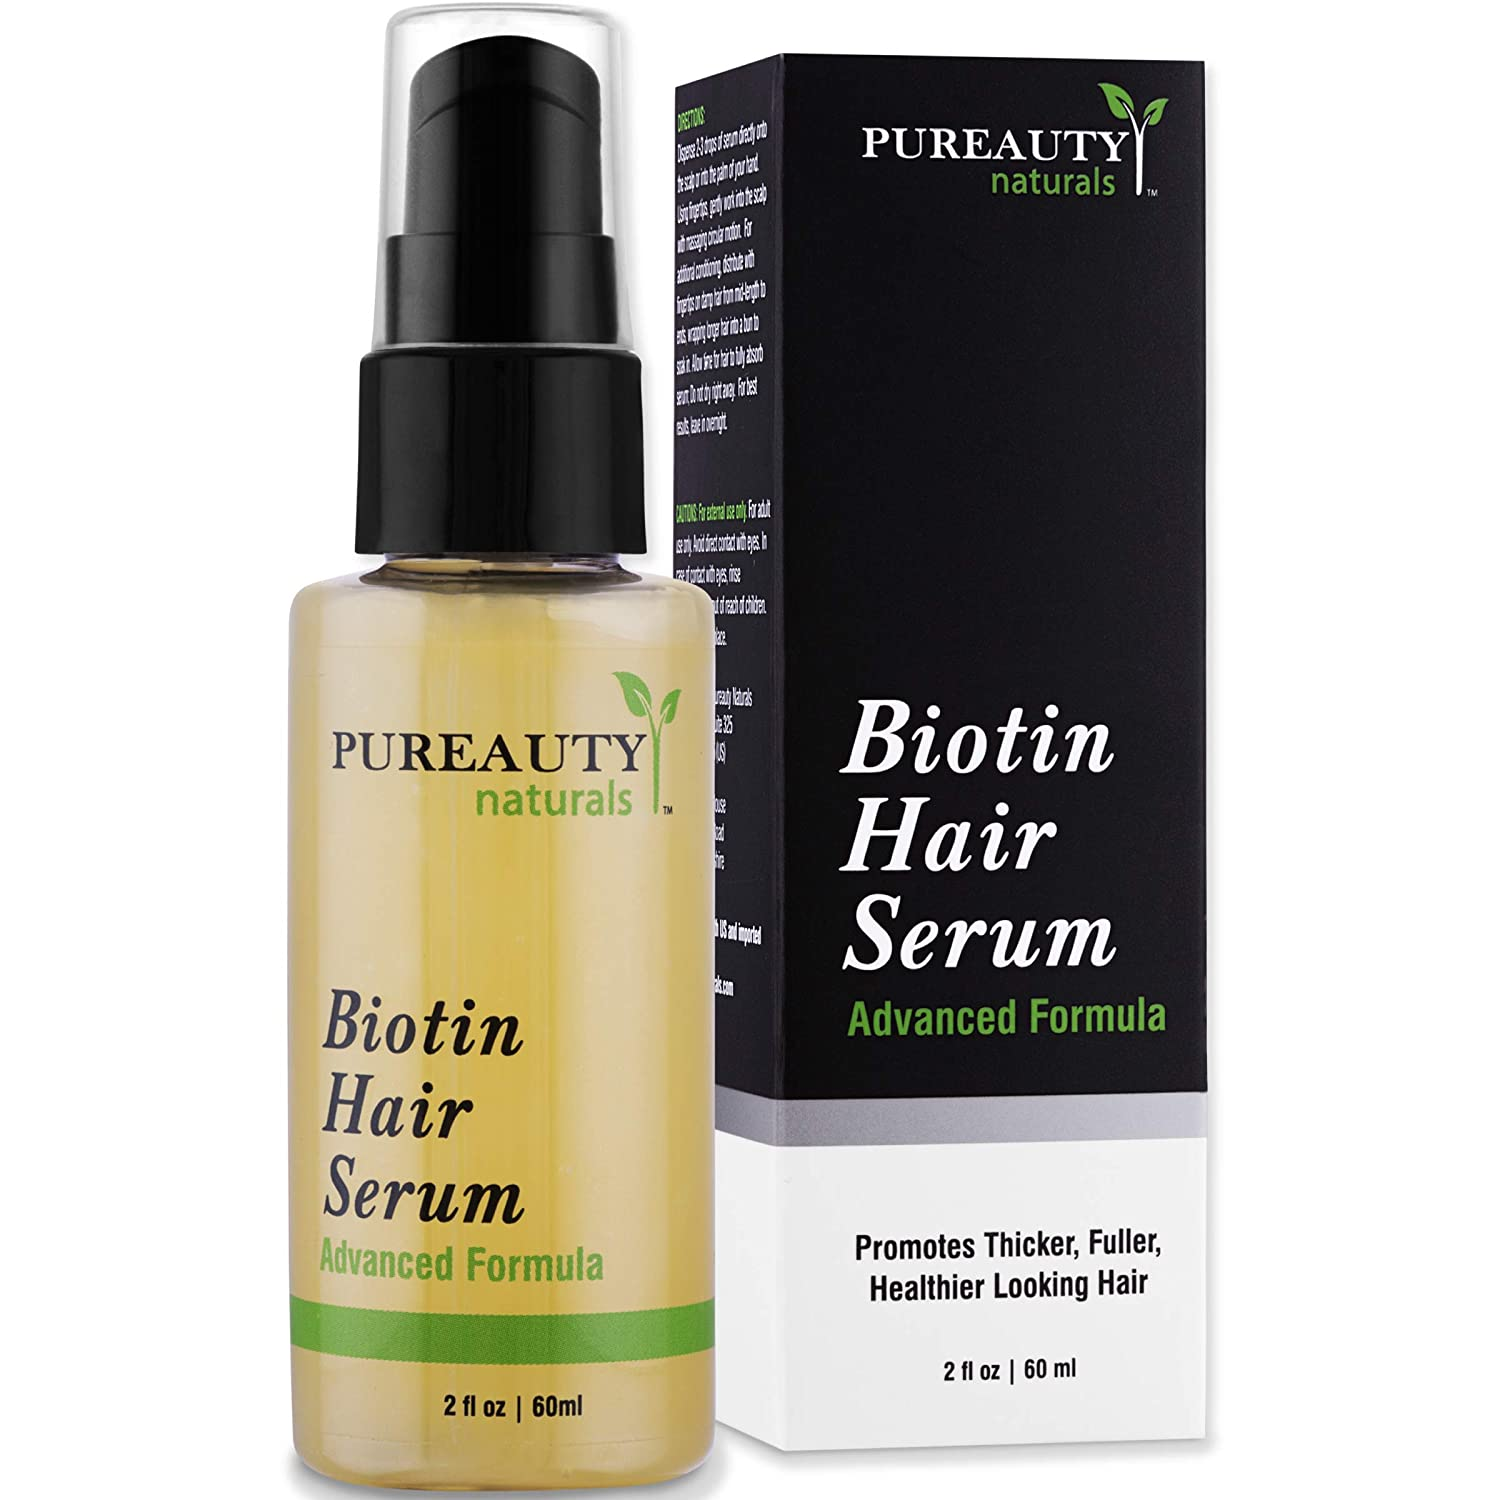 Biotin Hair Growth Serum Advanced Topical Formula To Help Grow Healthy, Strong Hair